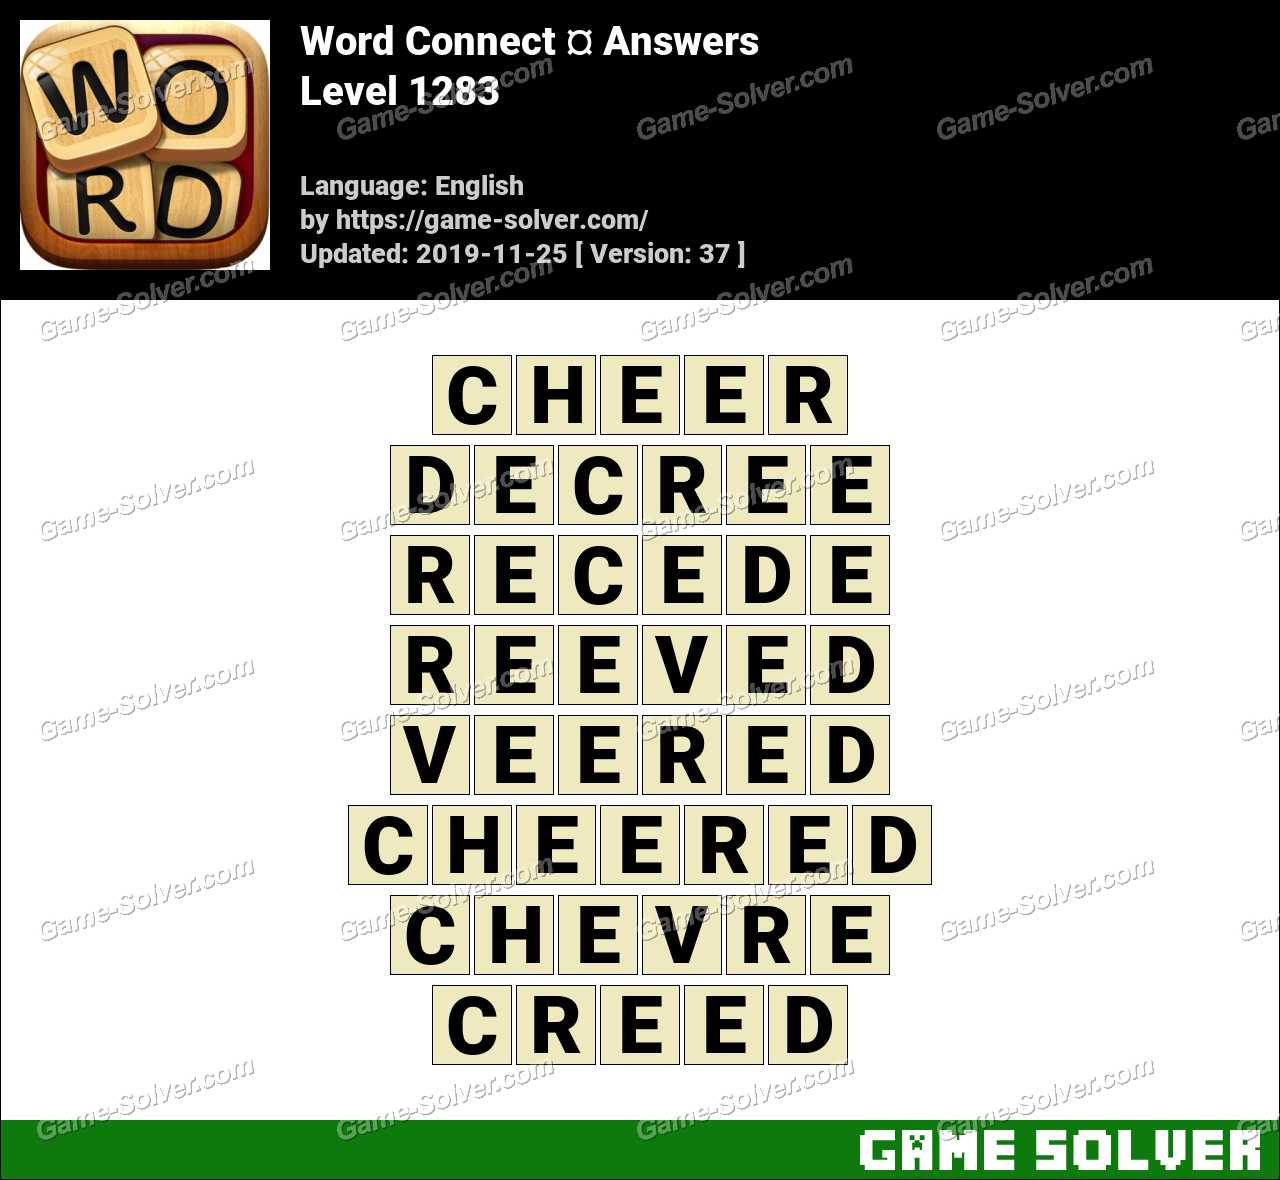 Word Connect Level 1283 Answers